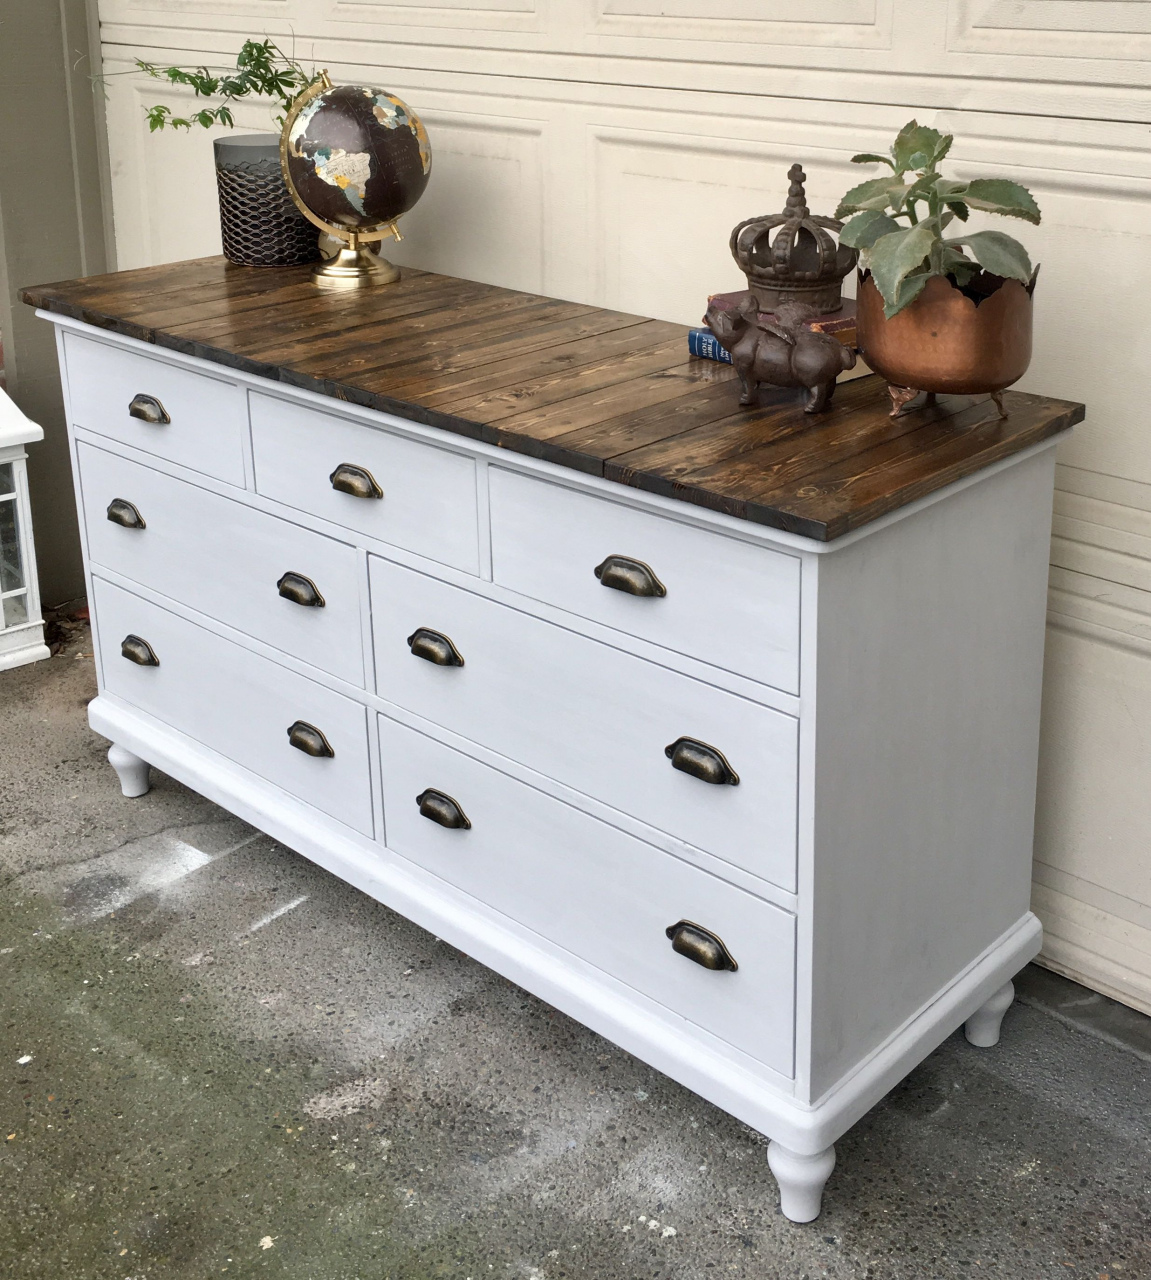 reclaimed wood dresser refinished pottery barn dresser painted in grey chalk paint new top durch reclaimed wood dresser